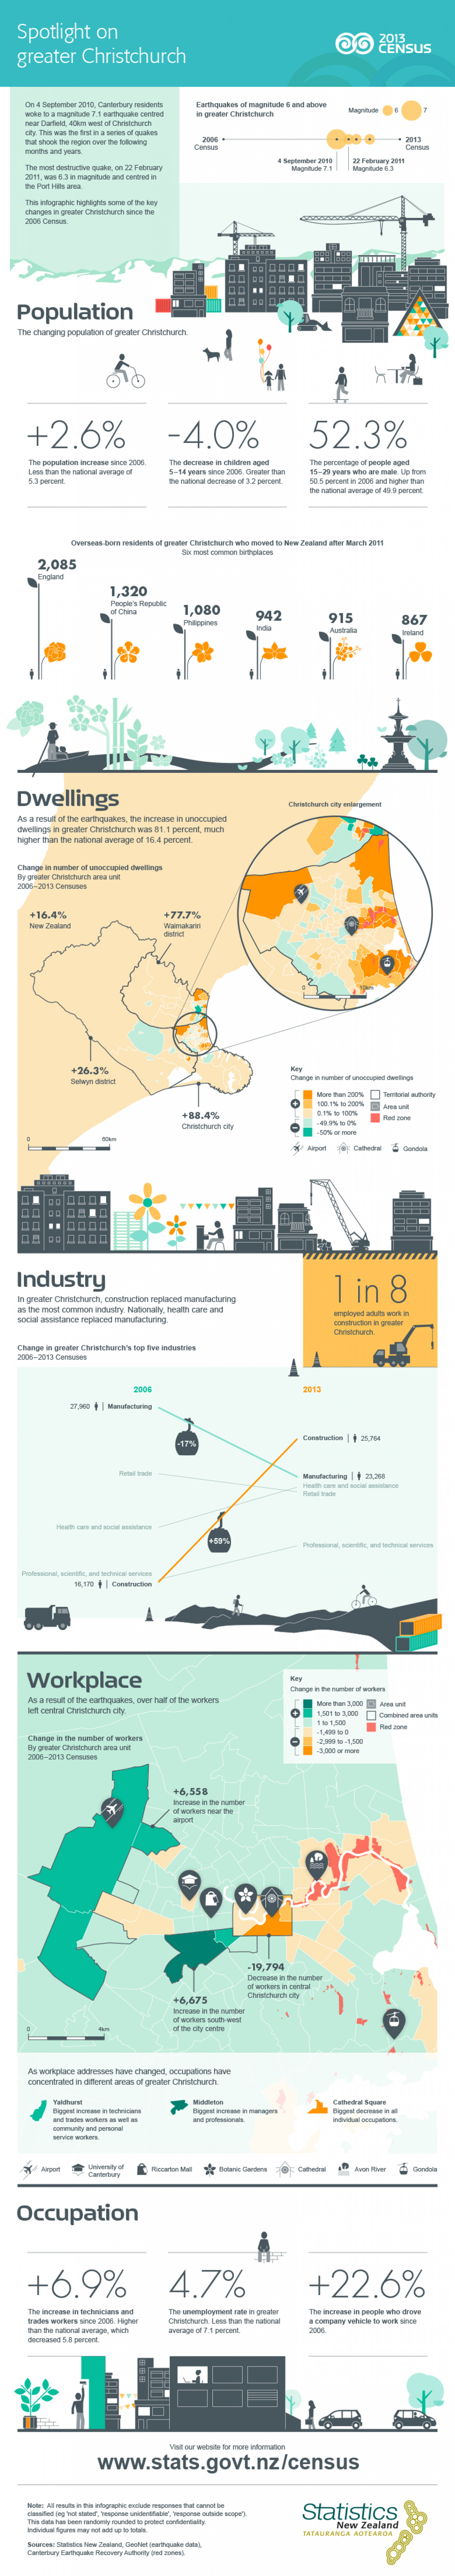 "2013 Census ""Spotlight on Greater Christchurch"" Infographic"